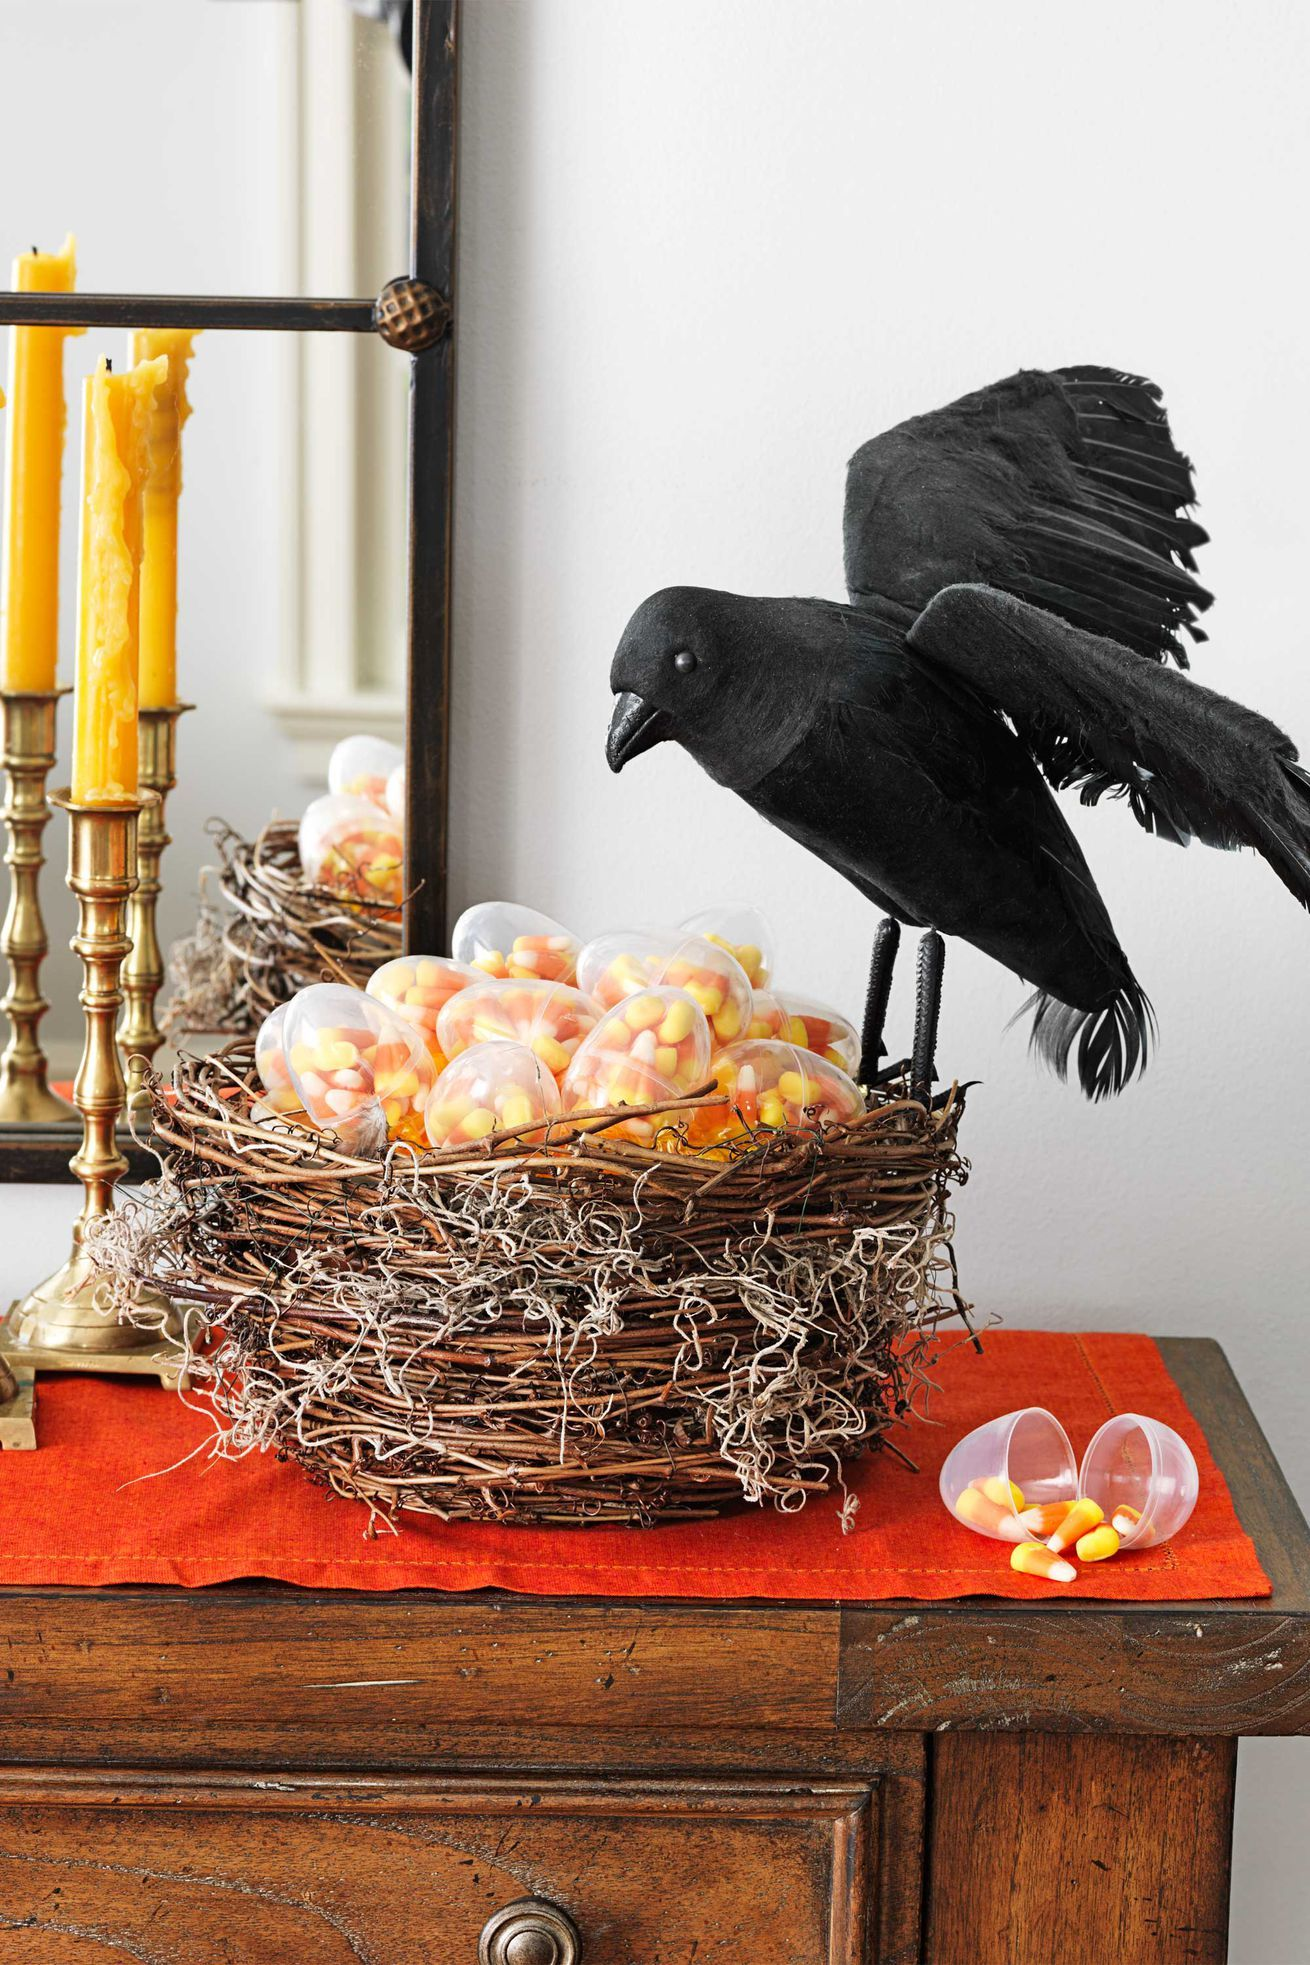 40 Spooky Halloween Decorations for the Best Holiday Ever - Spooky Halloween Decorations